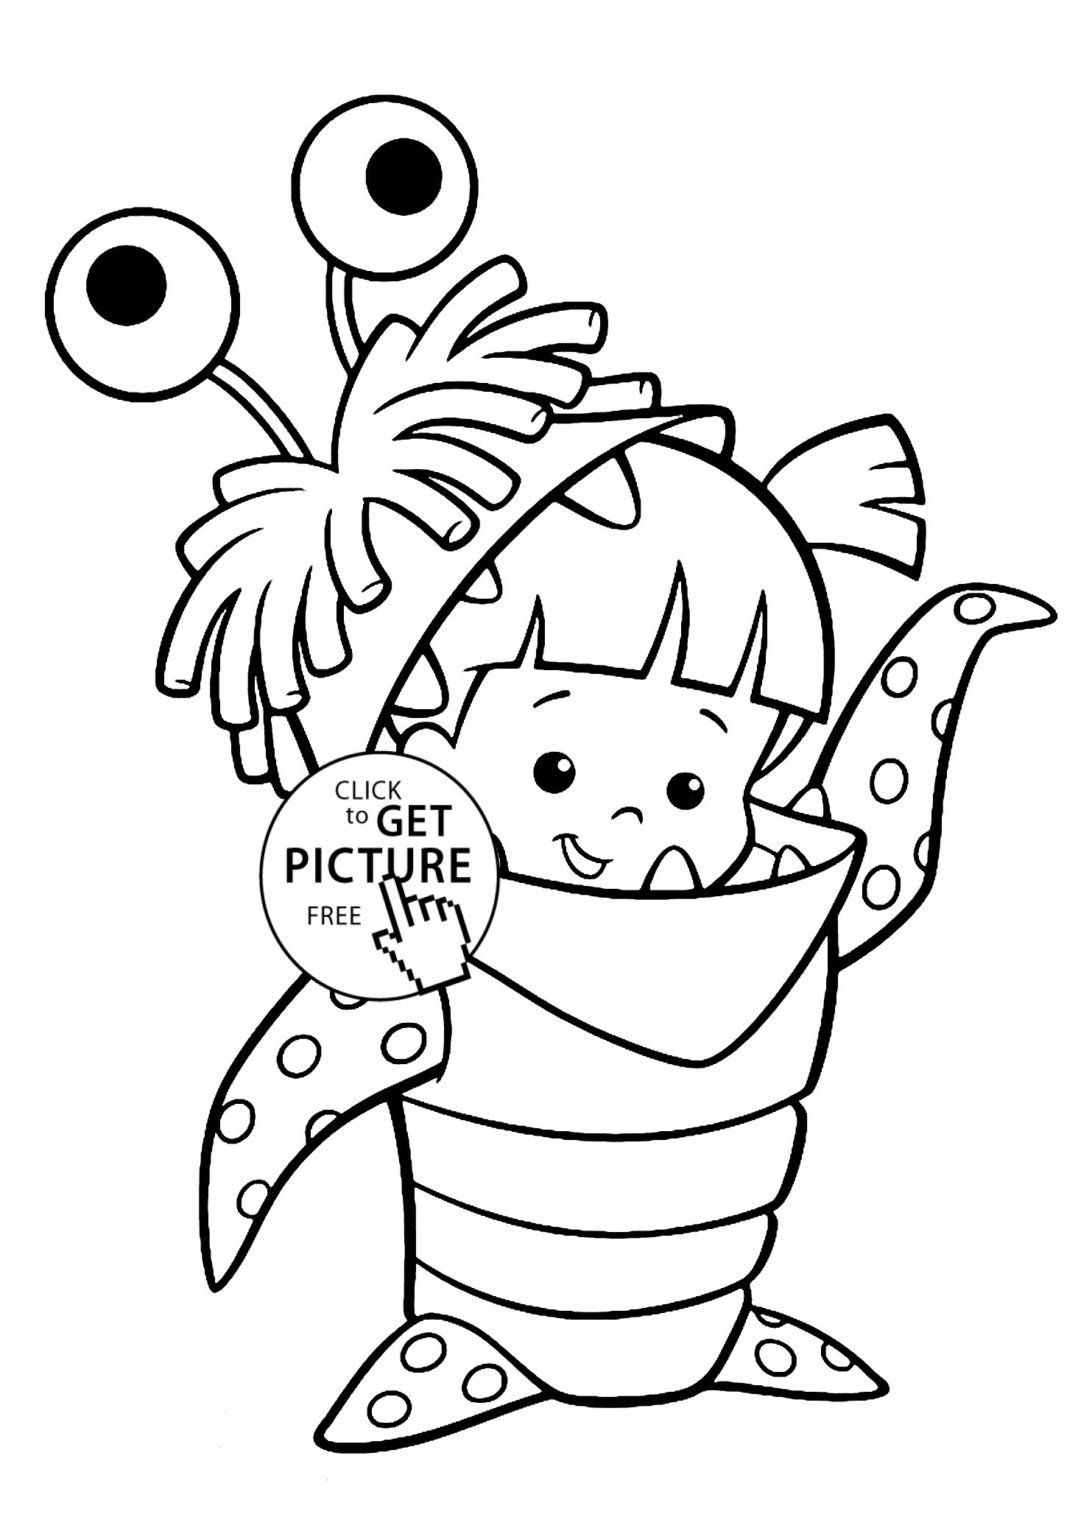 Sesame Street Birthday Coloring Pages Top 29 Fine Coloring Book New Elmo Pages Ikopico B In 2020 Monster Coloring Pages Toy Story Coloring Pages Cartoon Coloring Pages